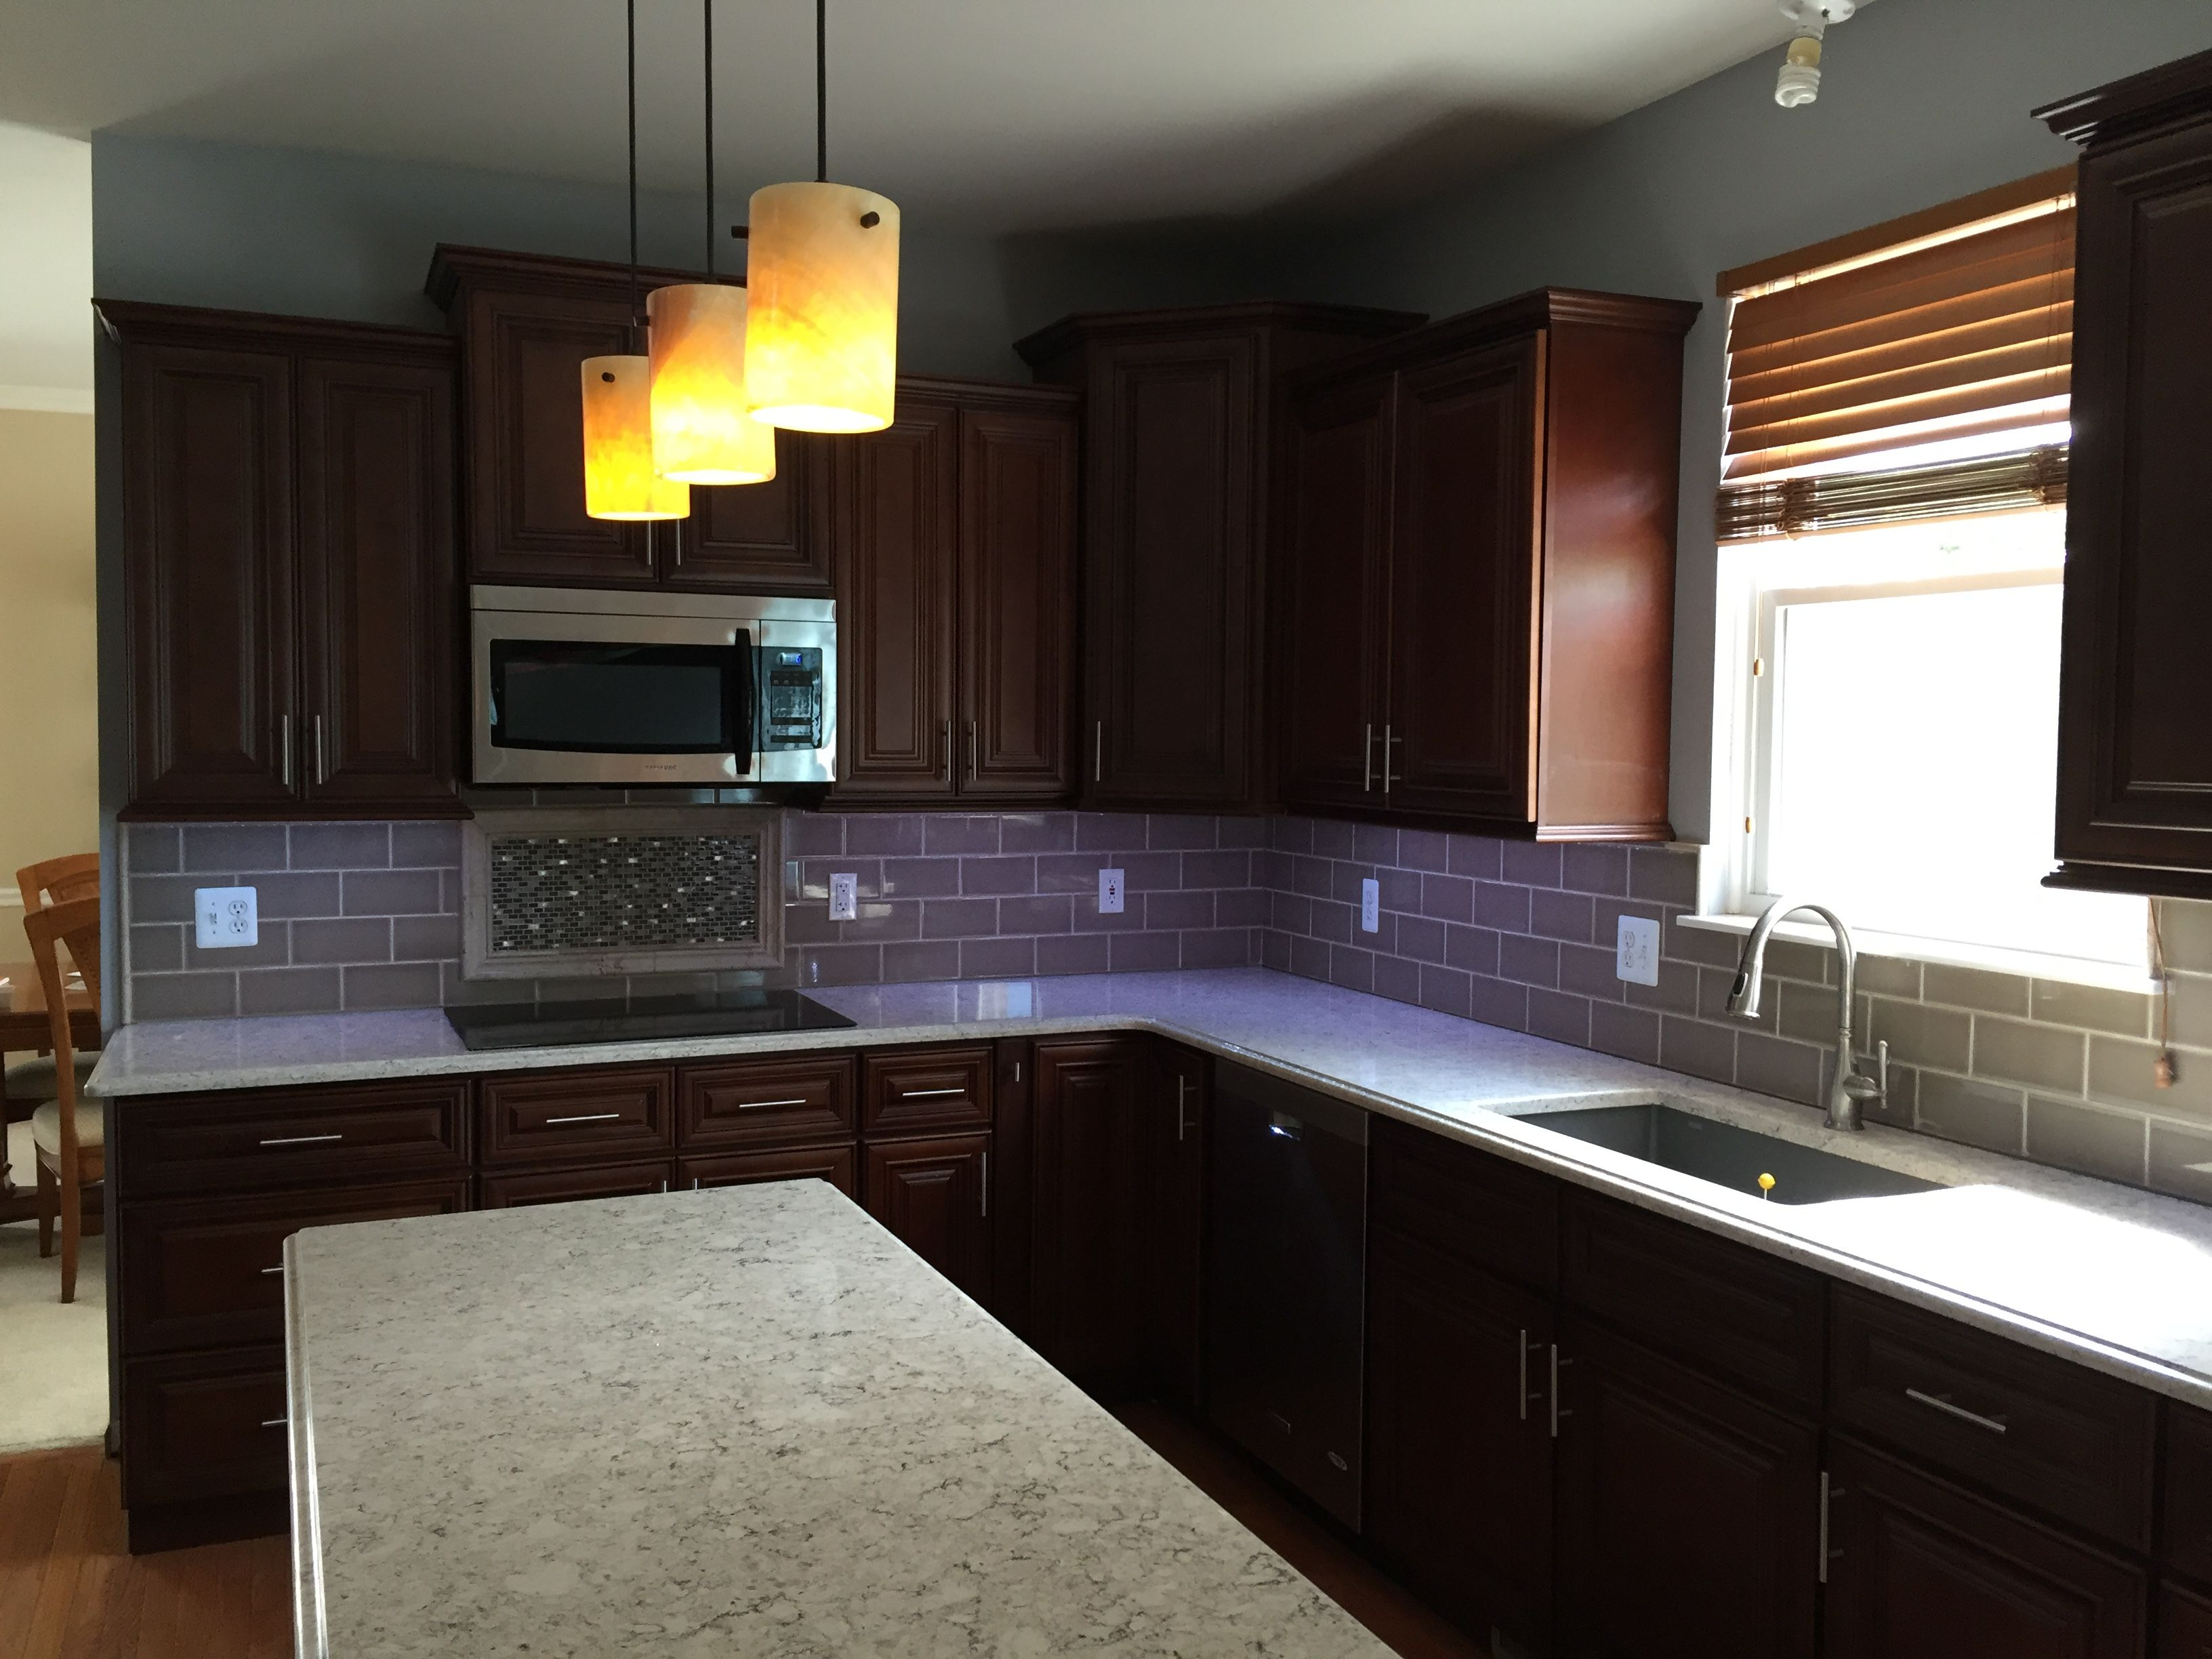 Charleston saddle rta kitchen cabinets made by lily ann cabinets